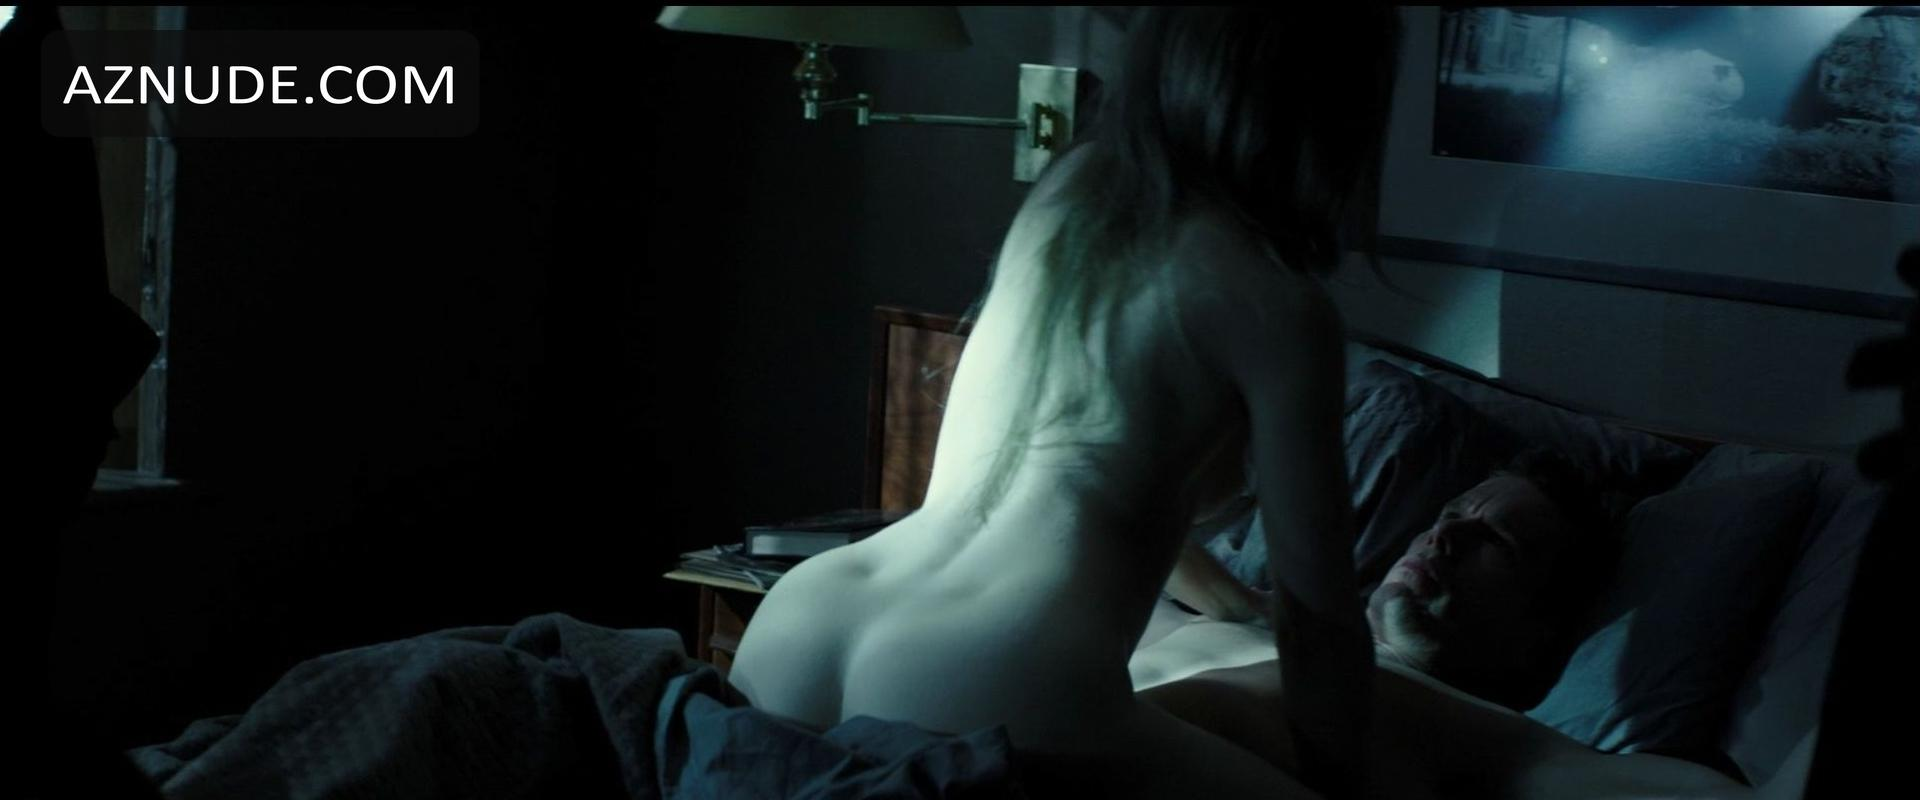 image Regression emma watson nude sex scene